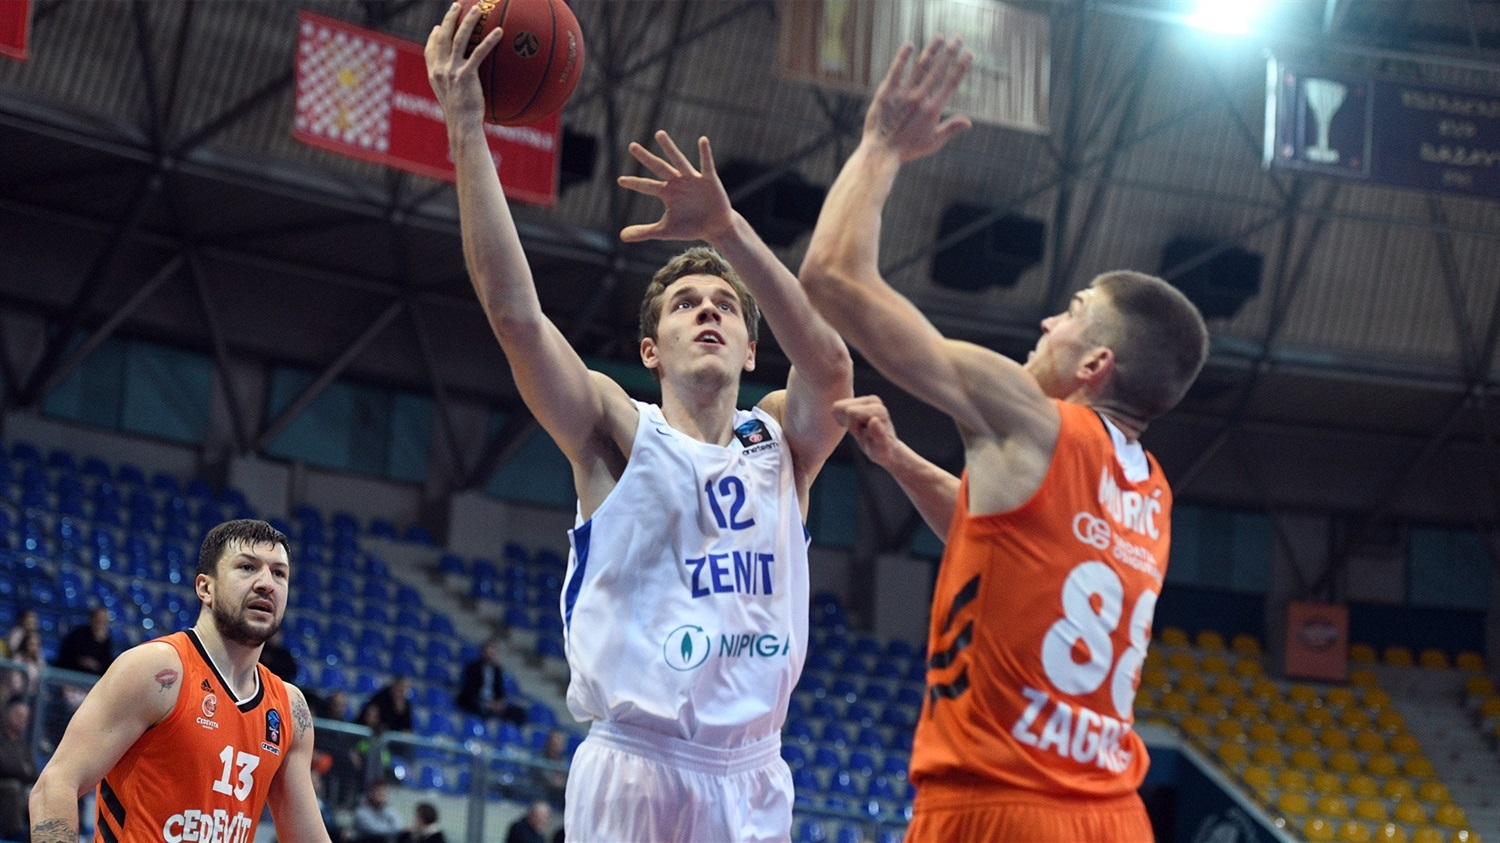 Sergei Balashov - Zenit St Petersburg (photo Cedevita) - EC18